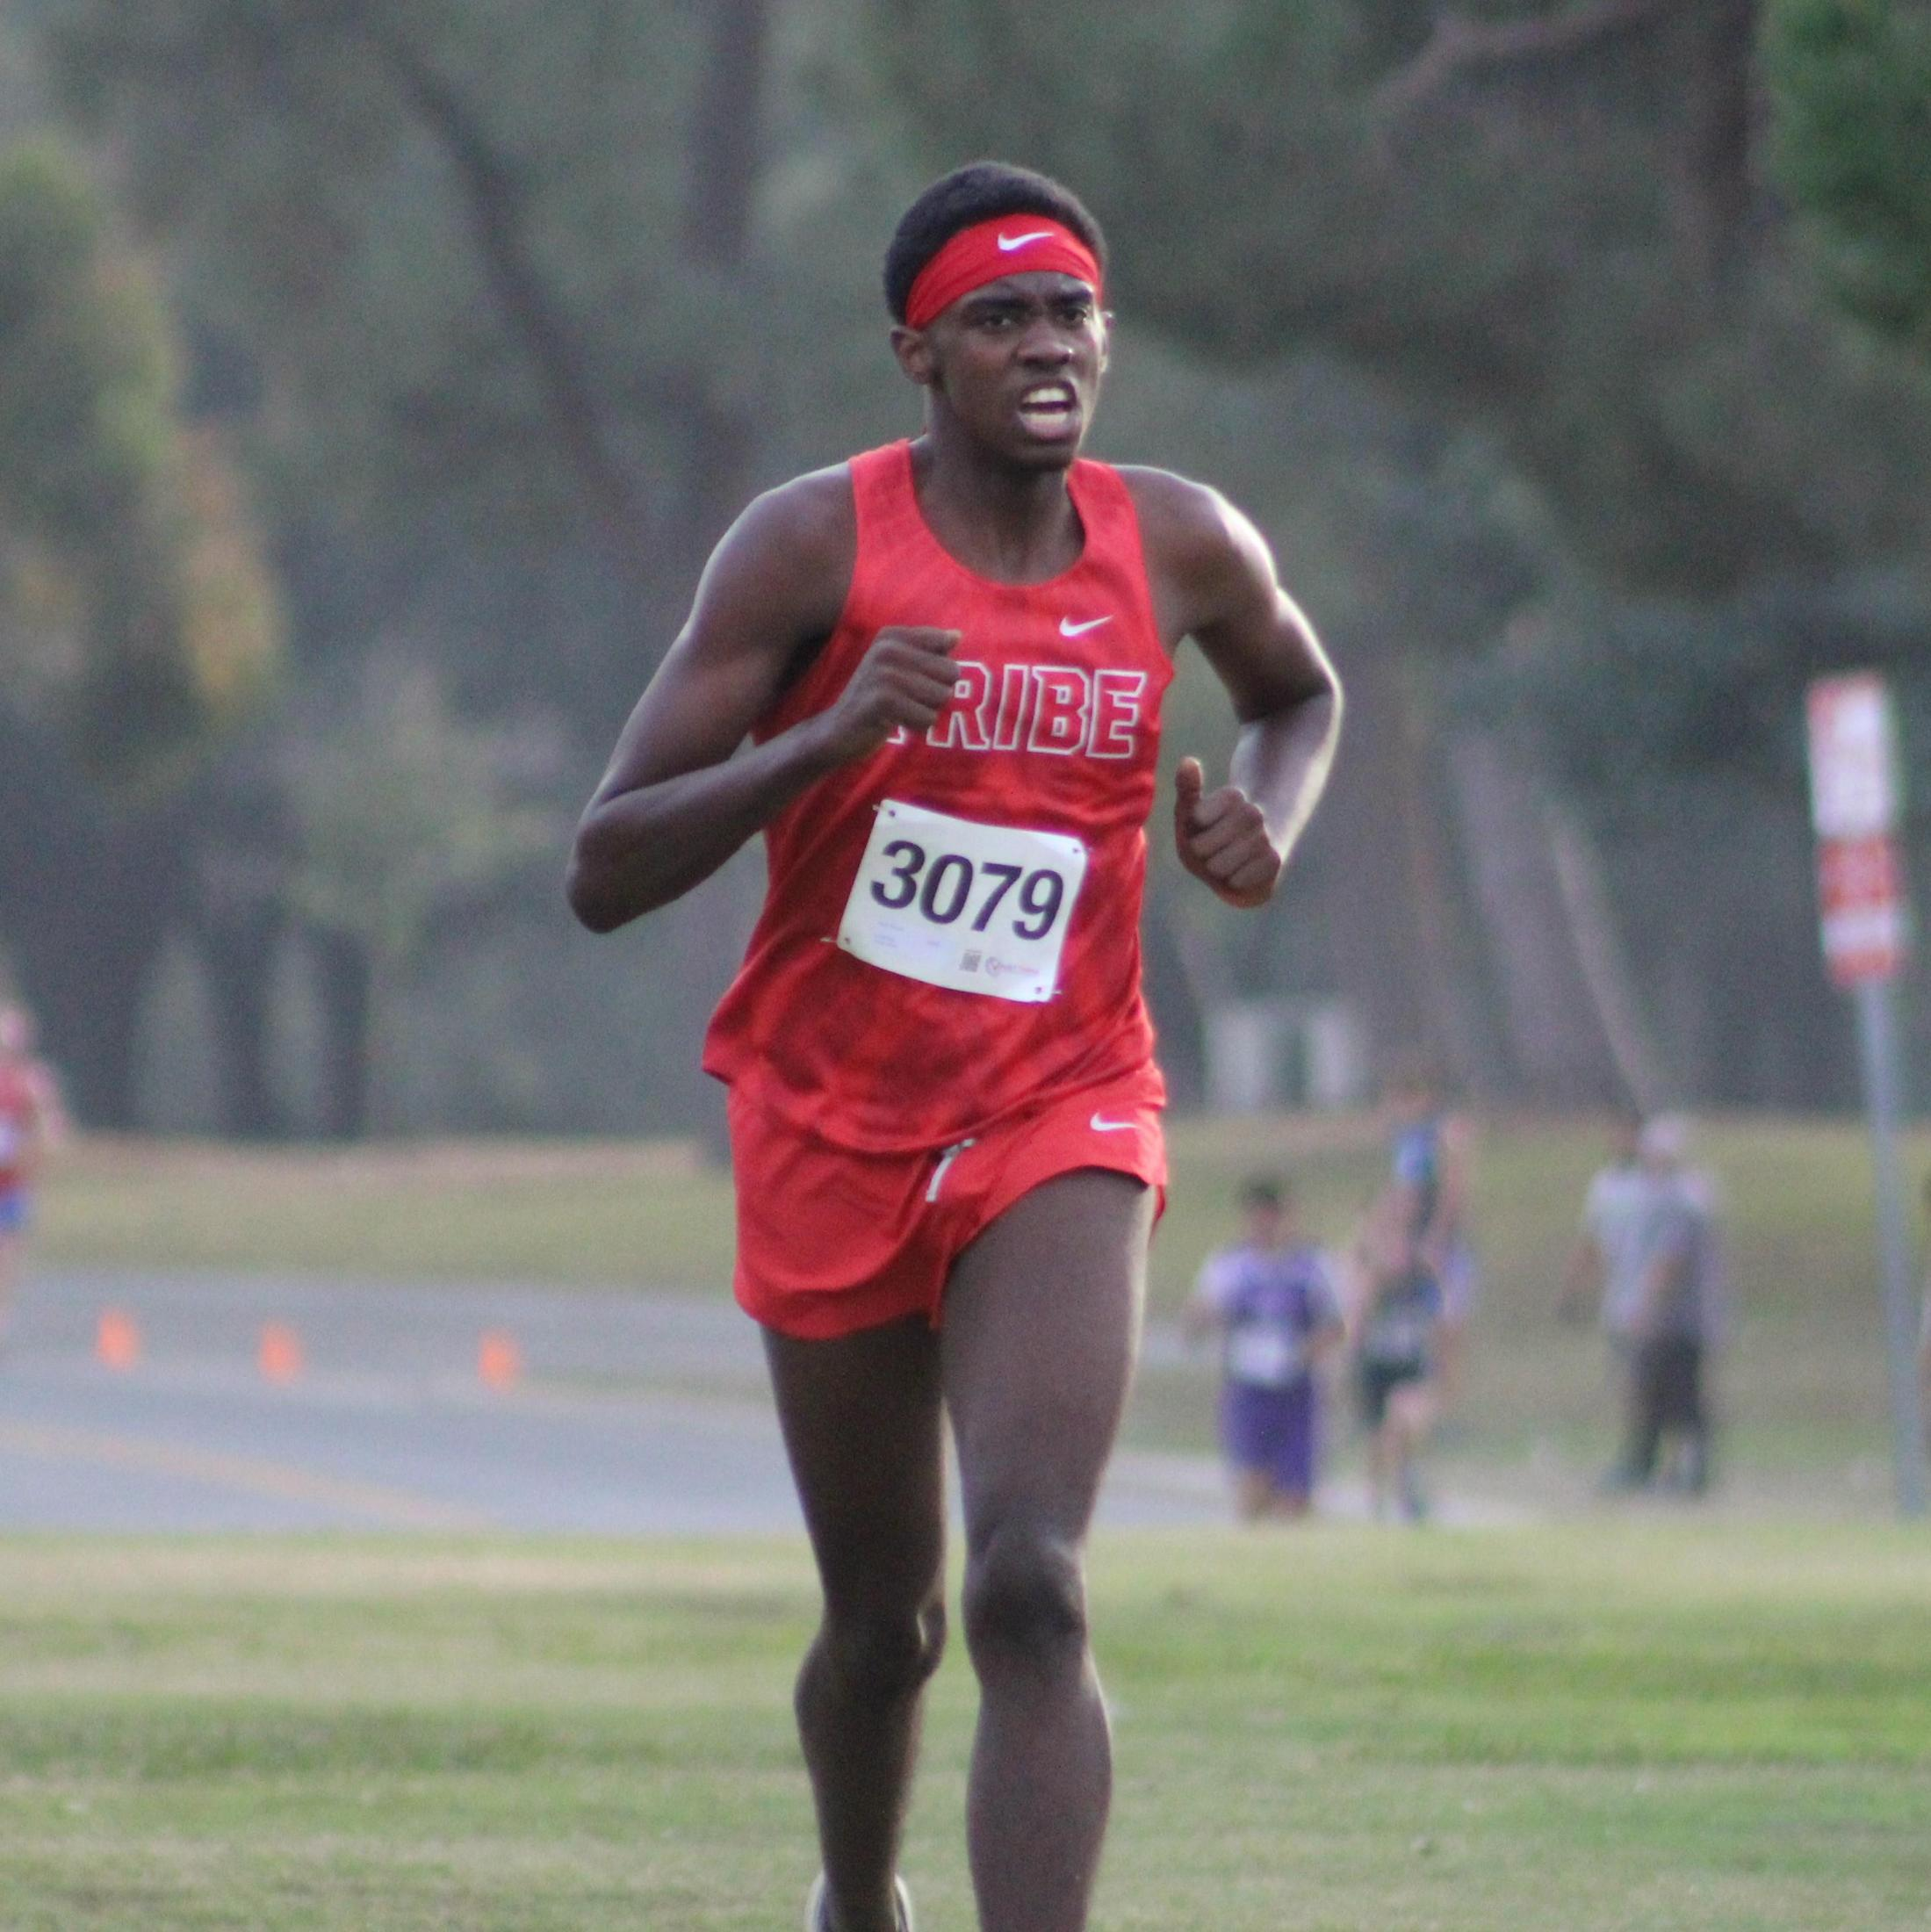 Dajon Davison running towards finish line